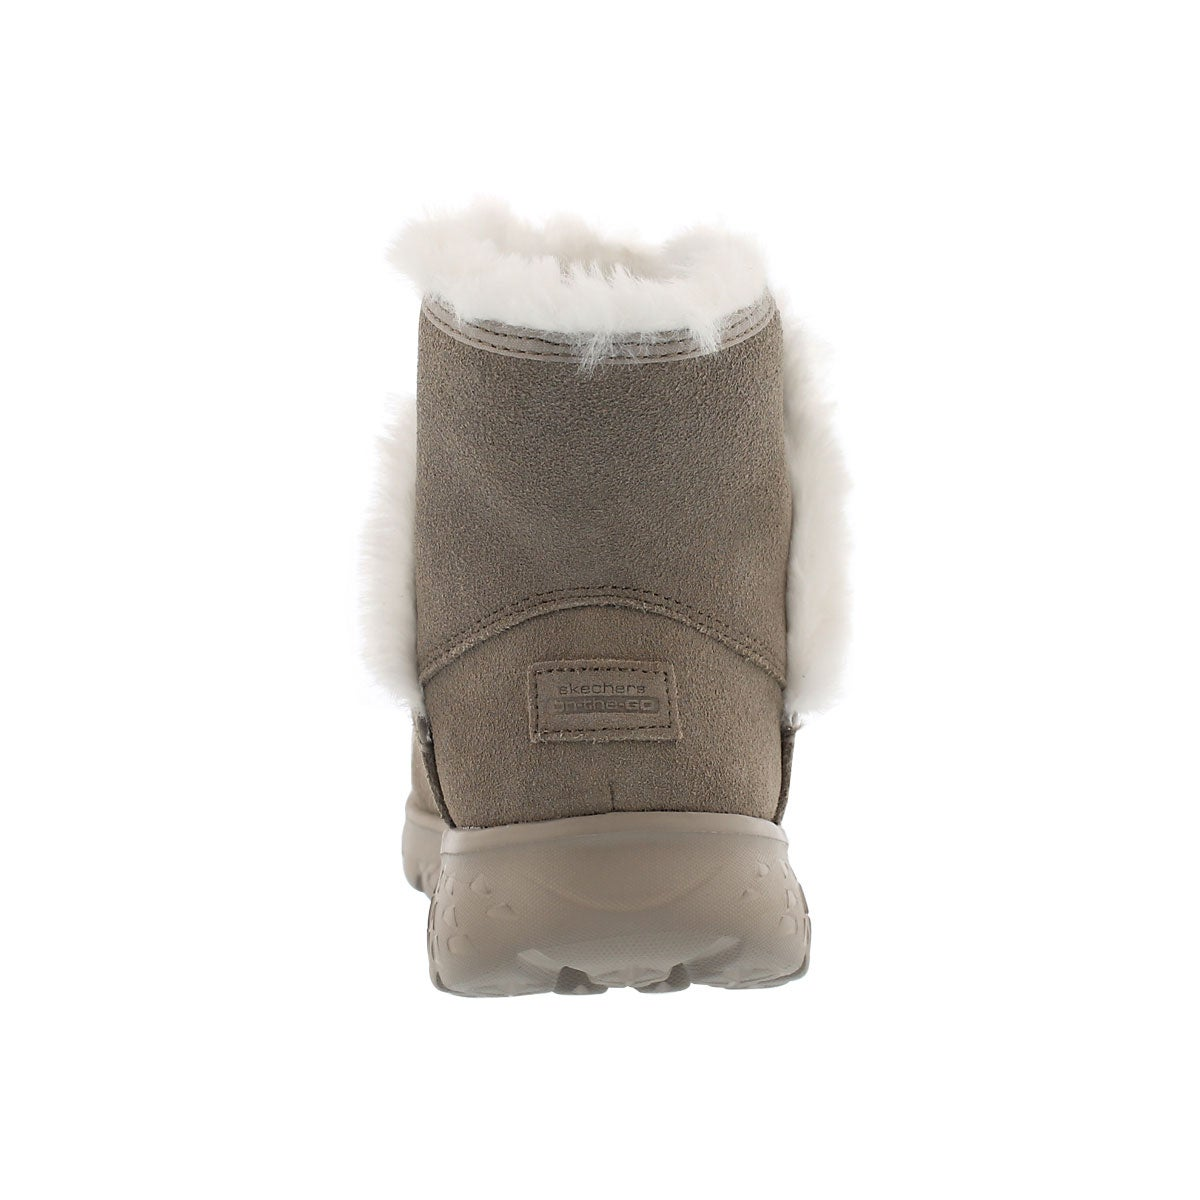 Lds 400 taupe pull on suede boot